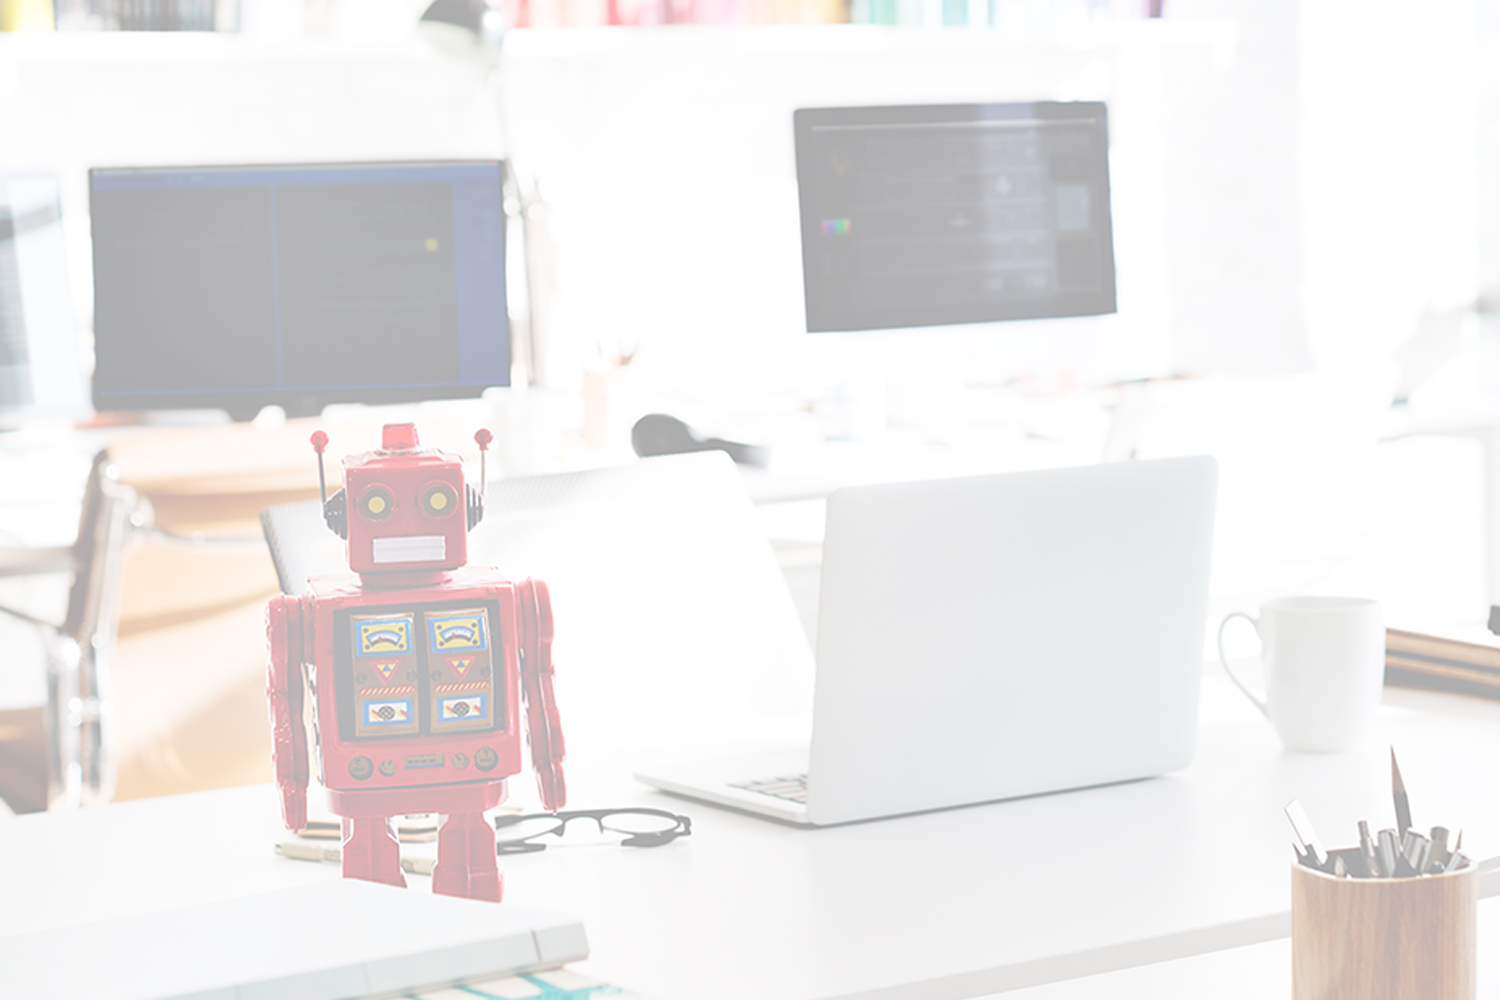 Understanding Bots: What Chatbots Can Do for Your Organization